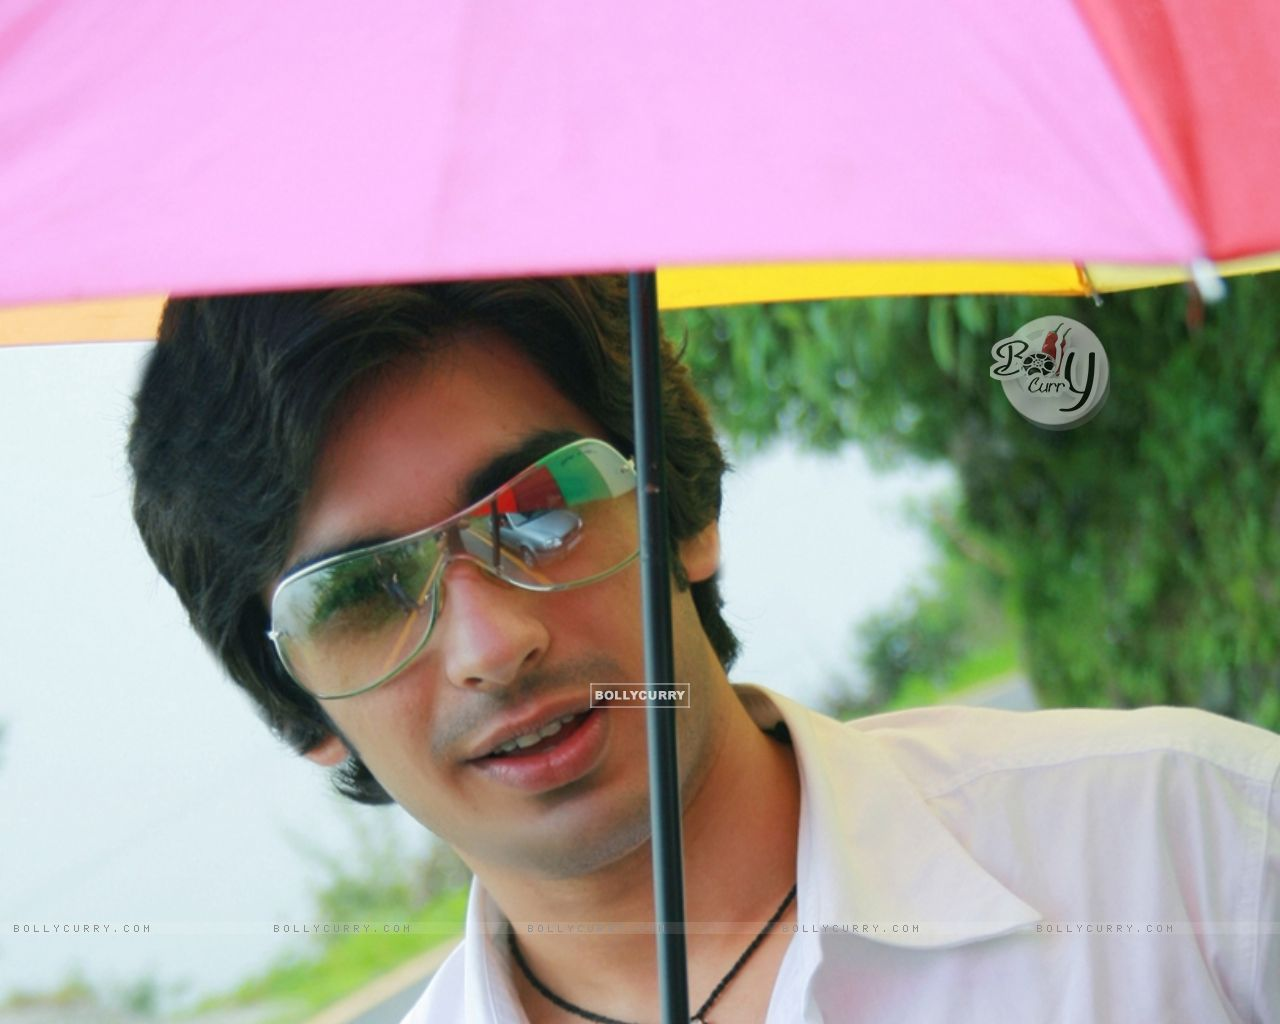 http://img.bollycurry.com/wallpapers/1280x1024/30659-mohit-sehgal.jpg